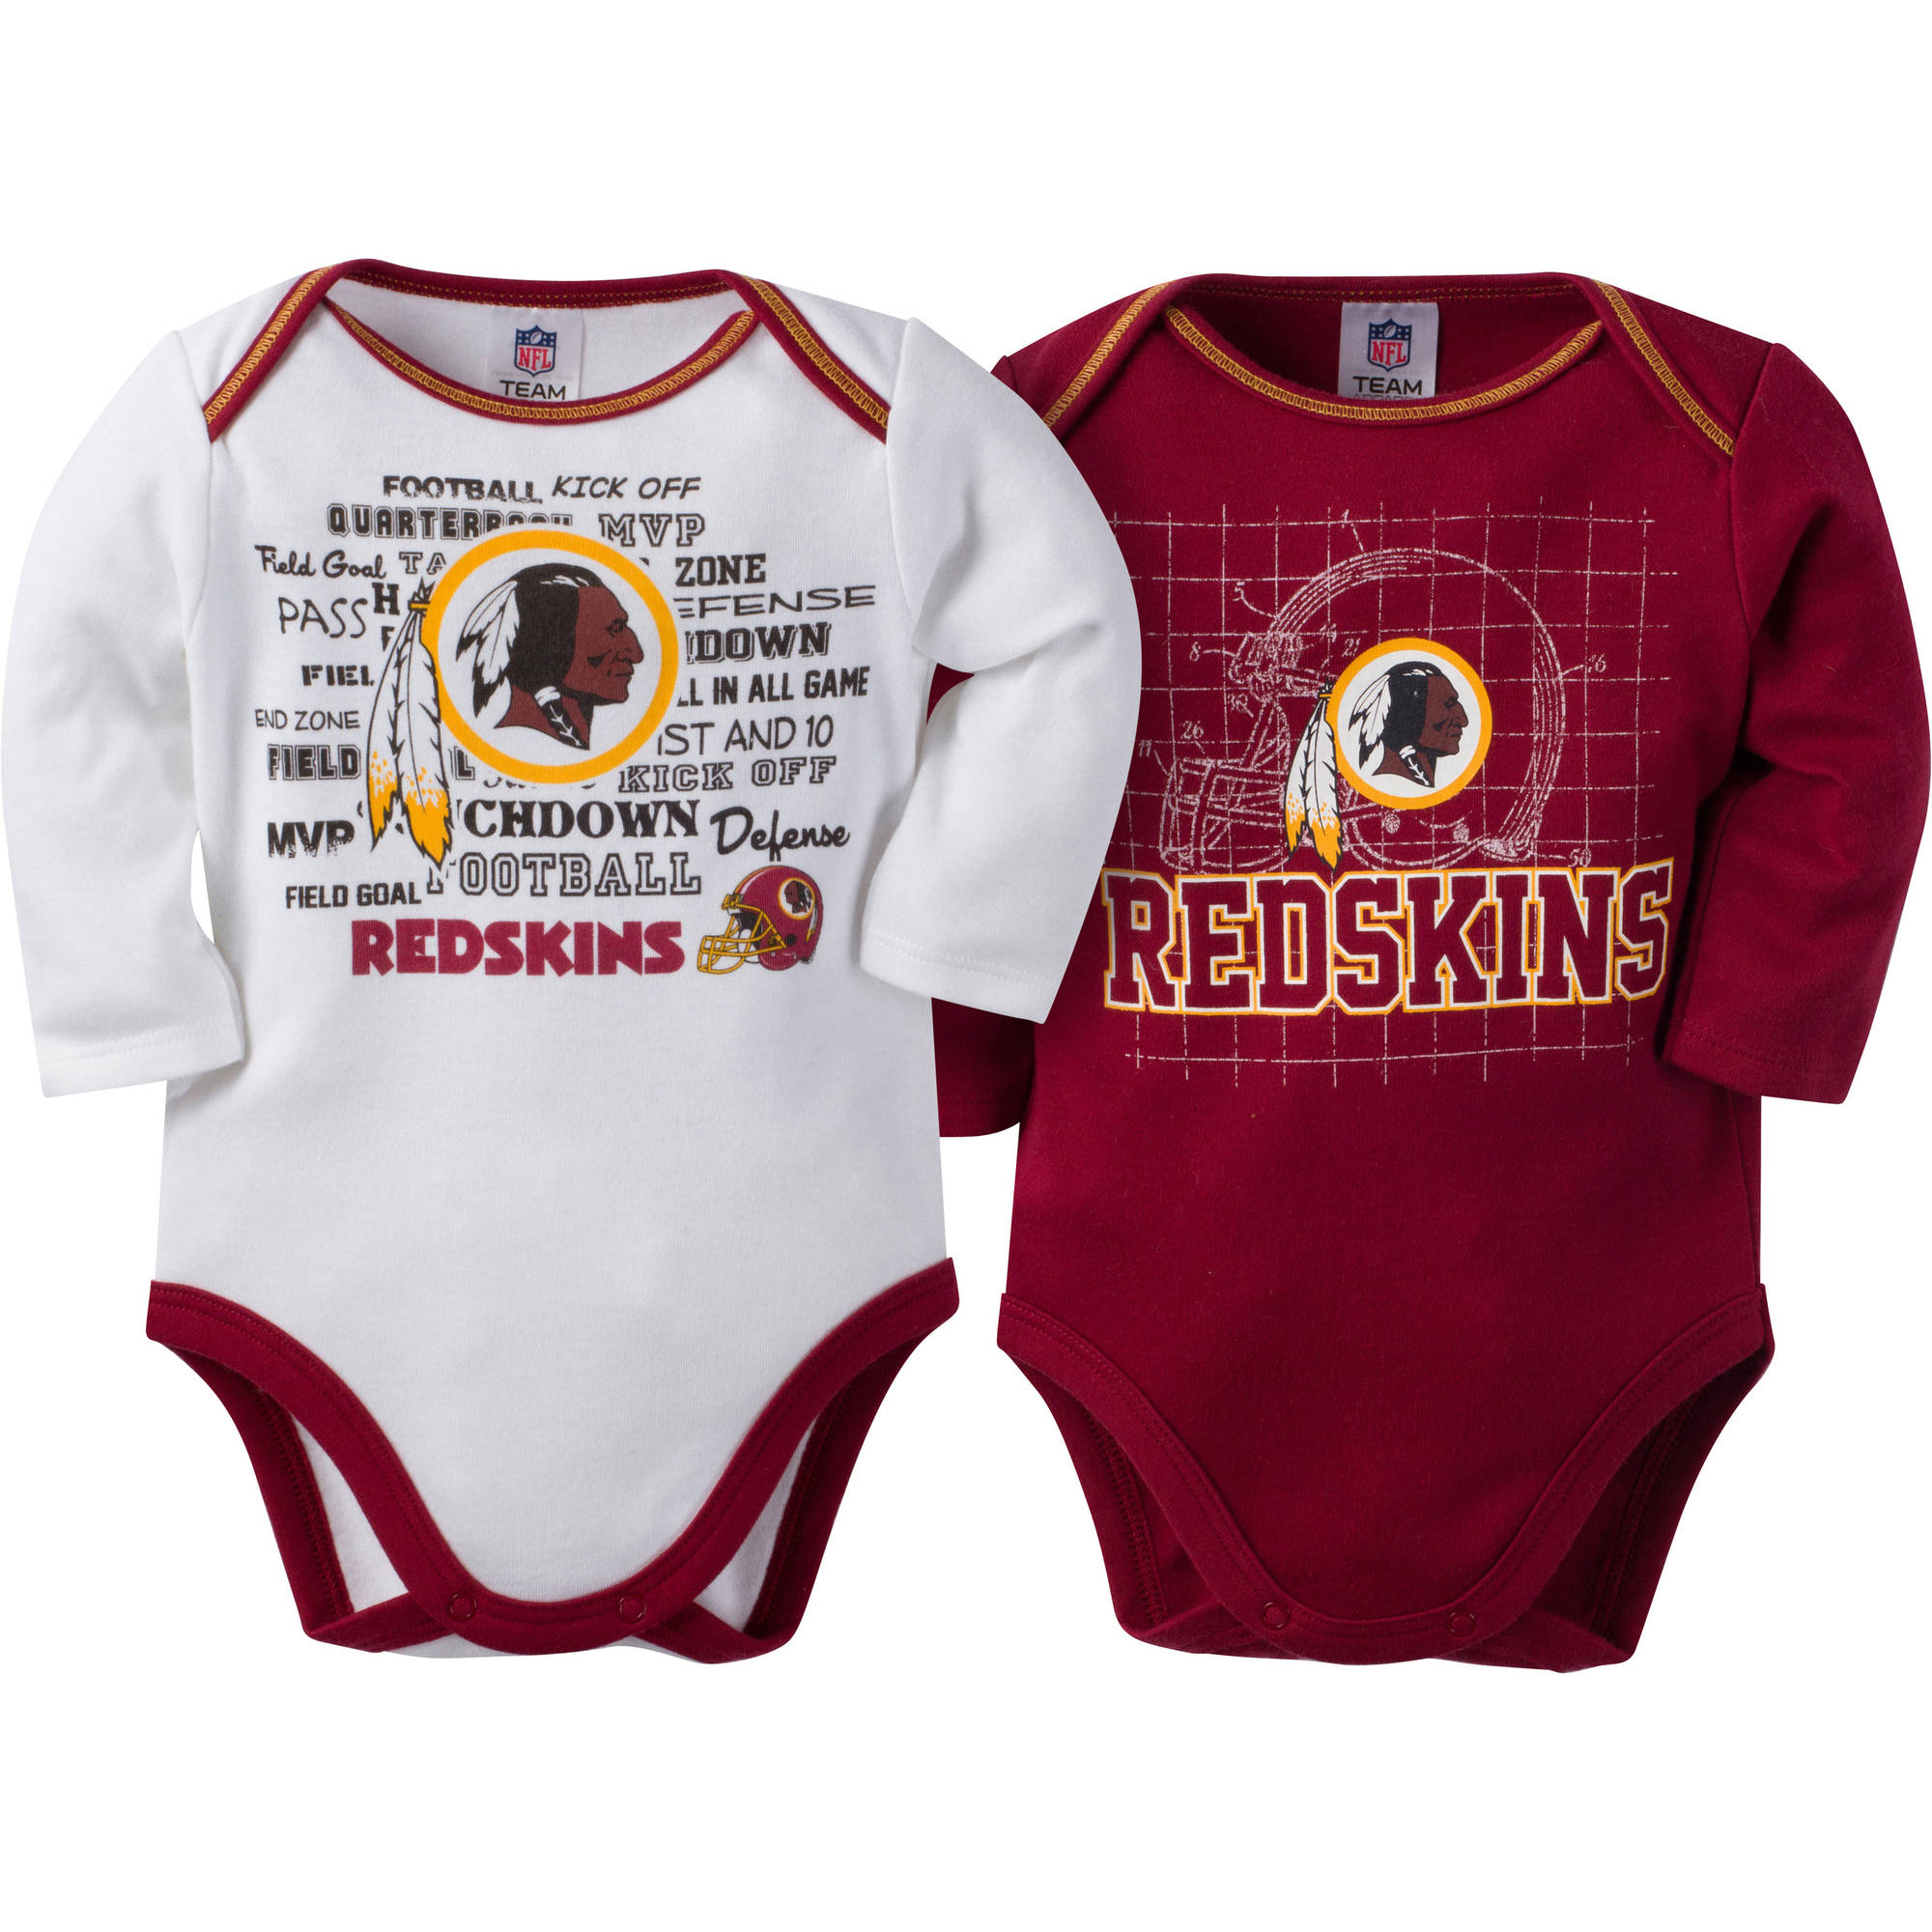 NFL Washington Redskins Baby Boys Long Sleeve Bodysuit Set, 2-Pack